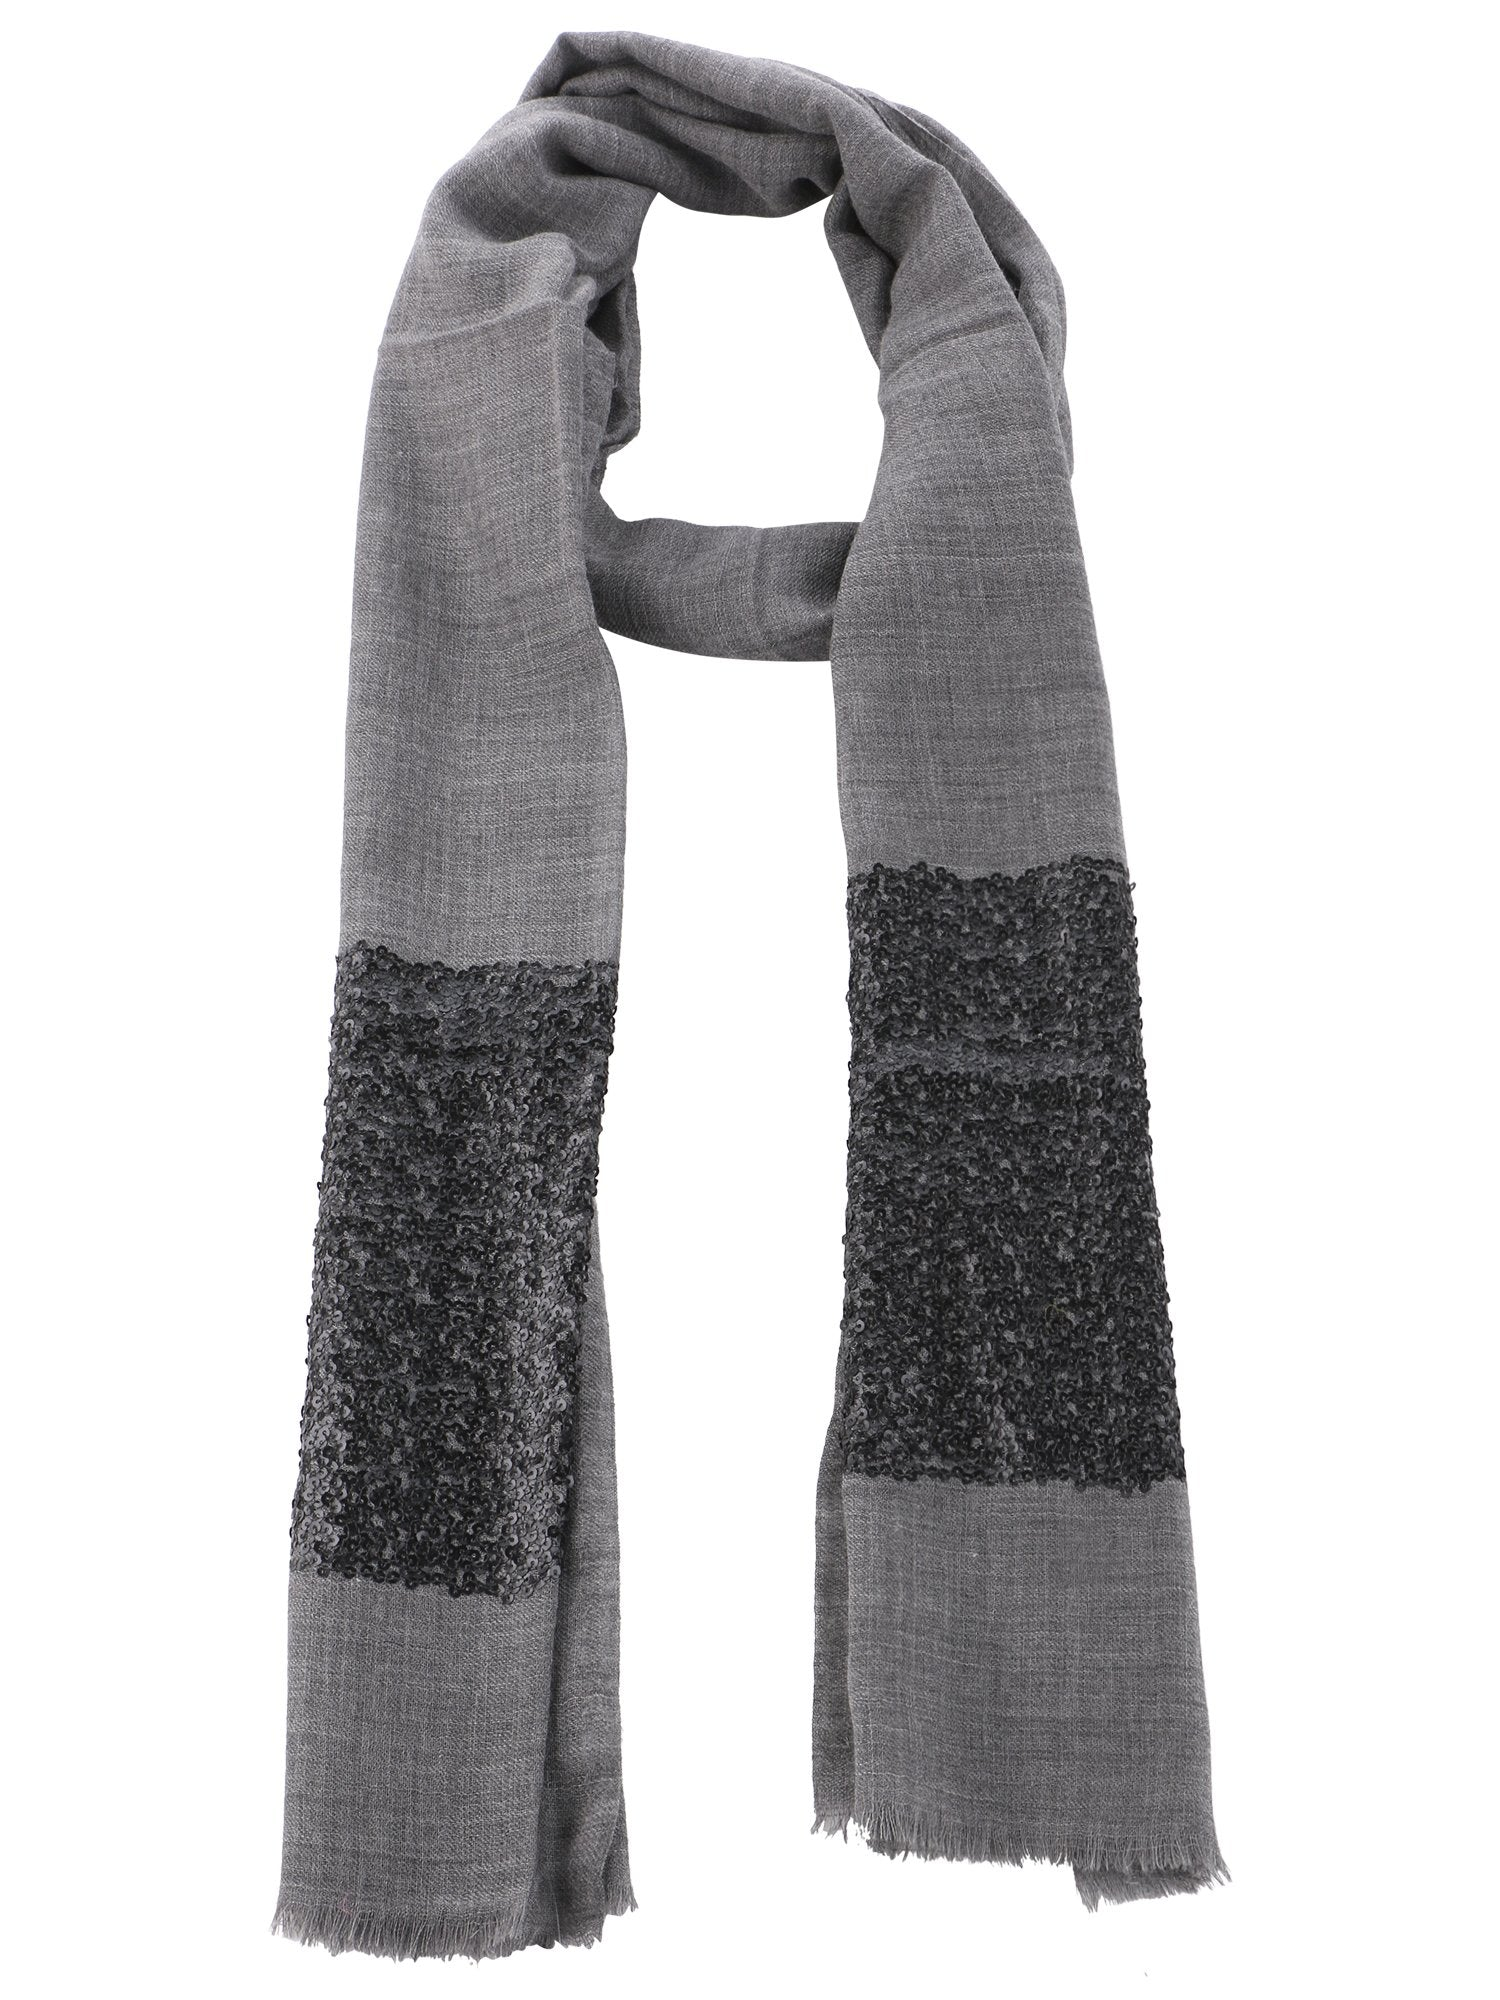 Sequins Fine Wool Stole - 2